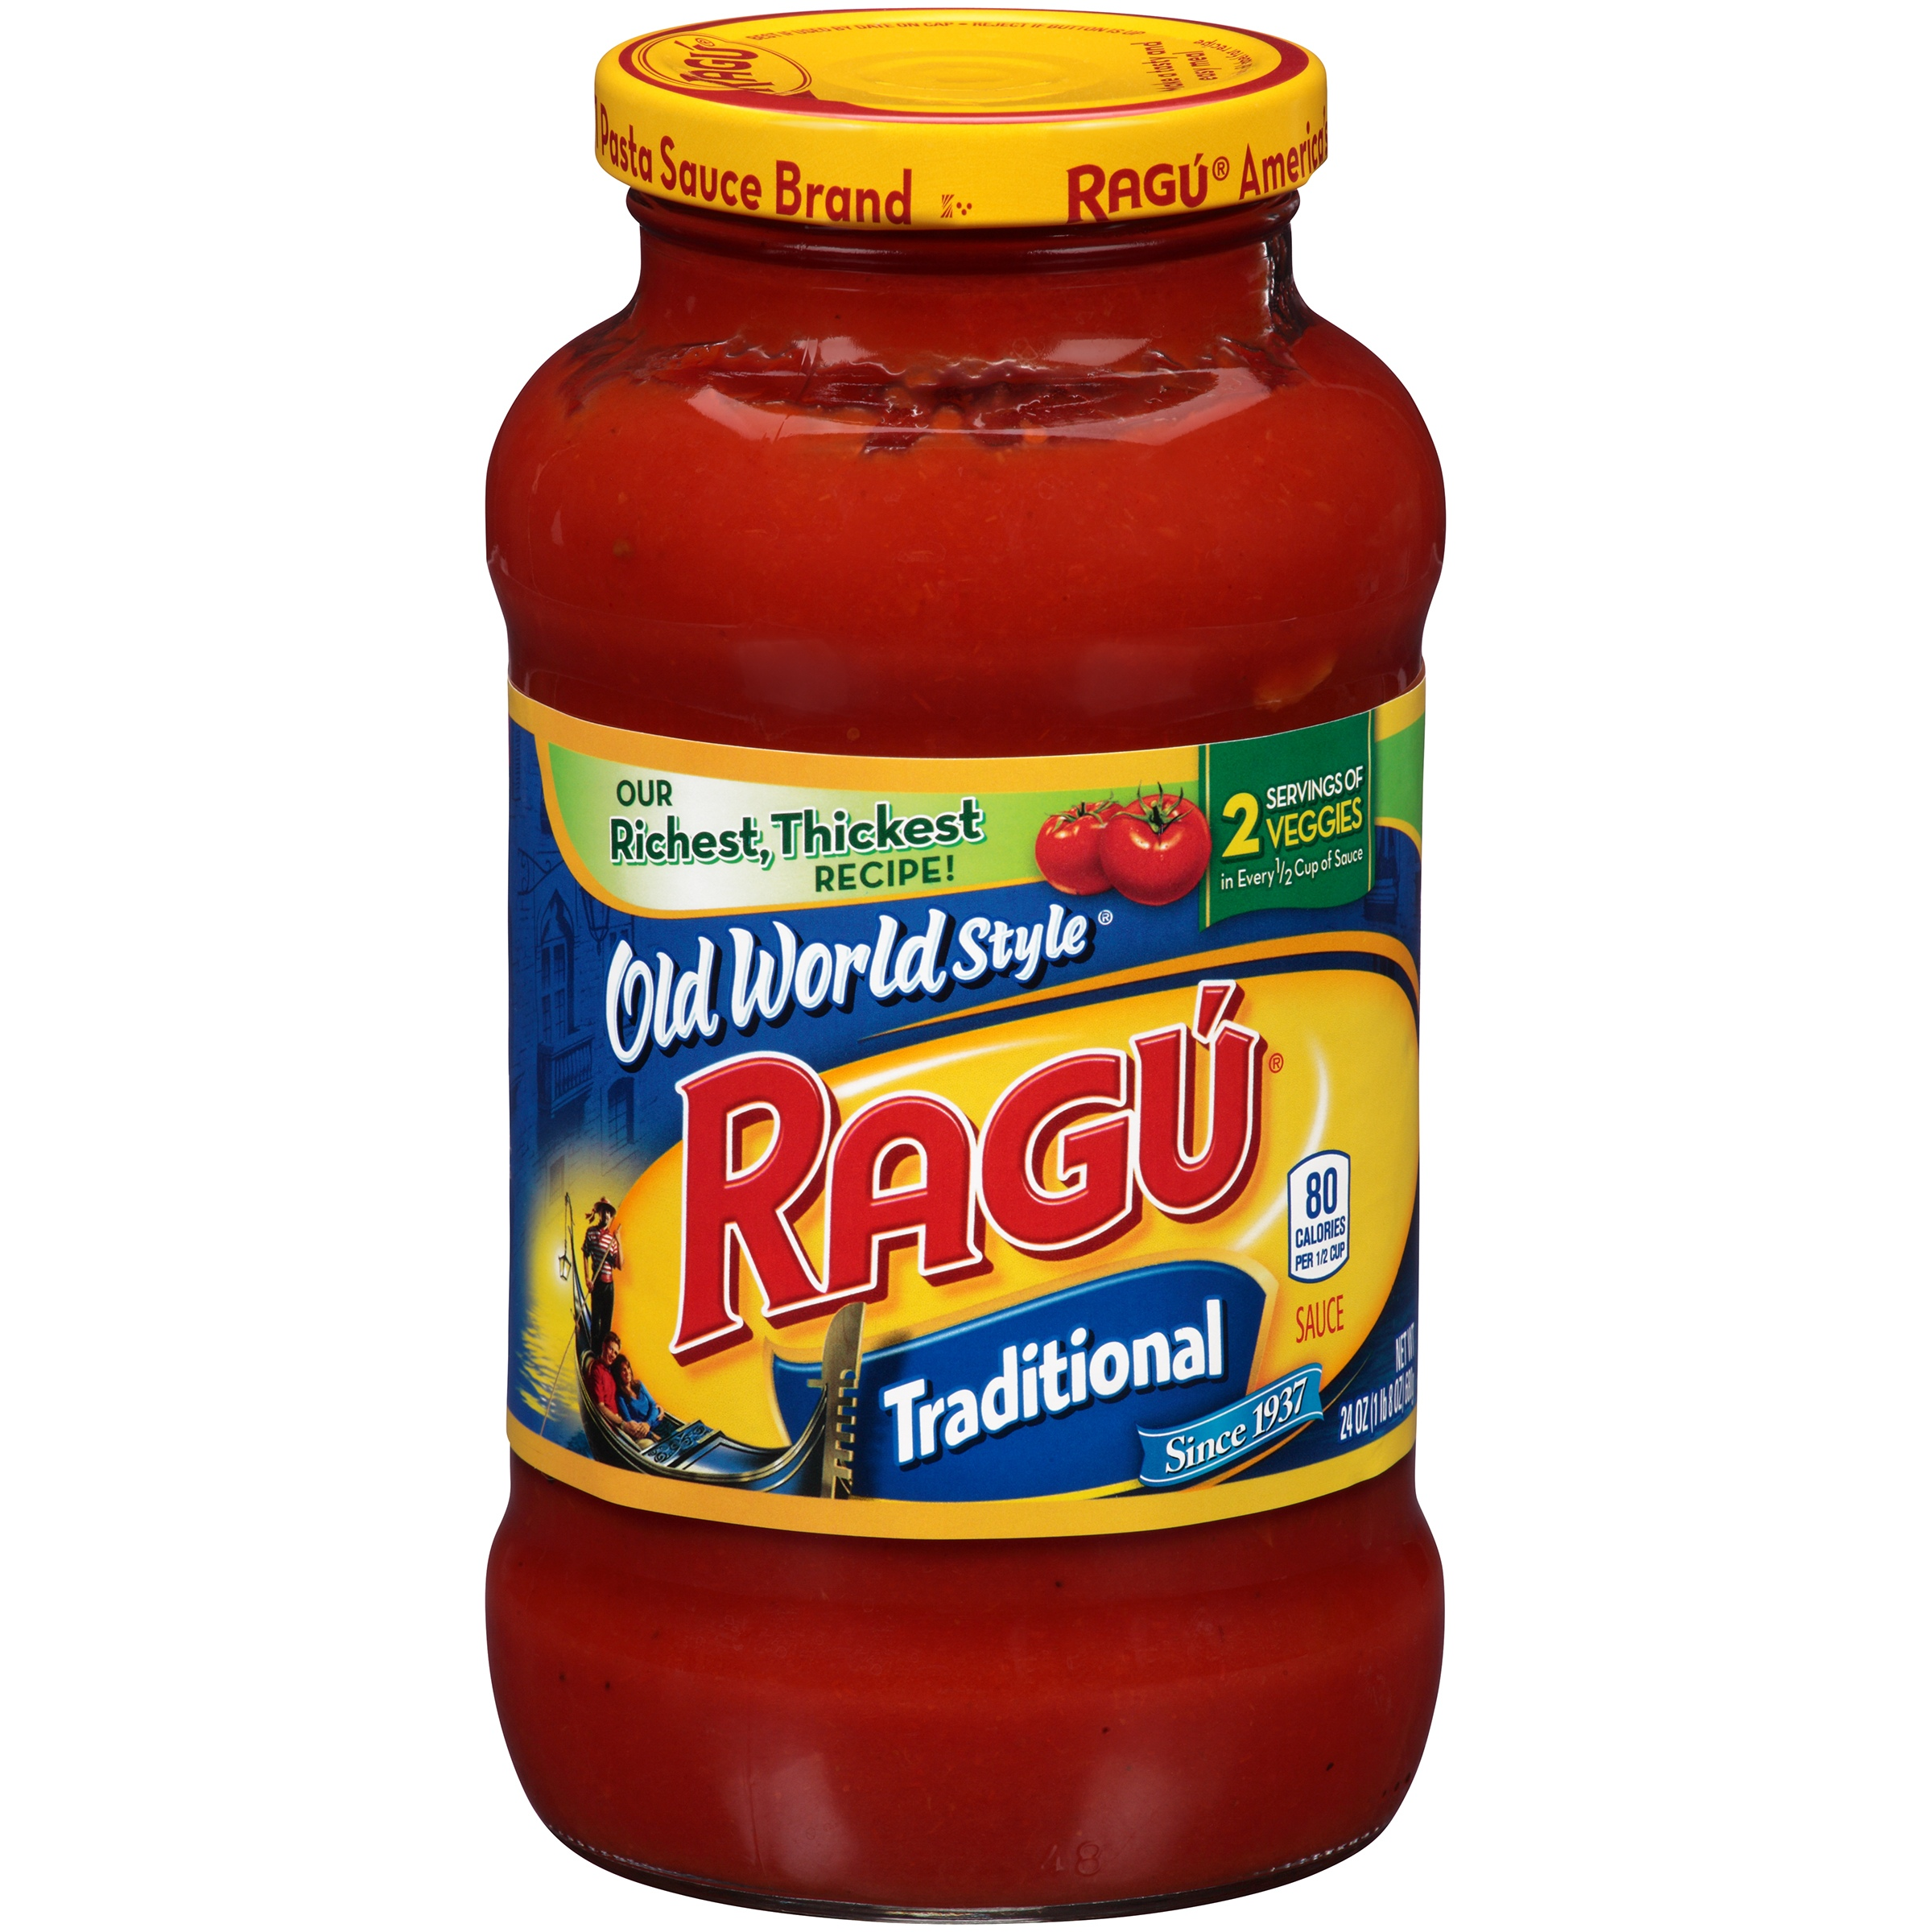 Ragú Old World Style Traditional Sauce 24 oz.